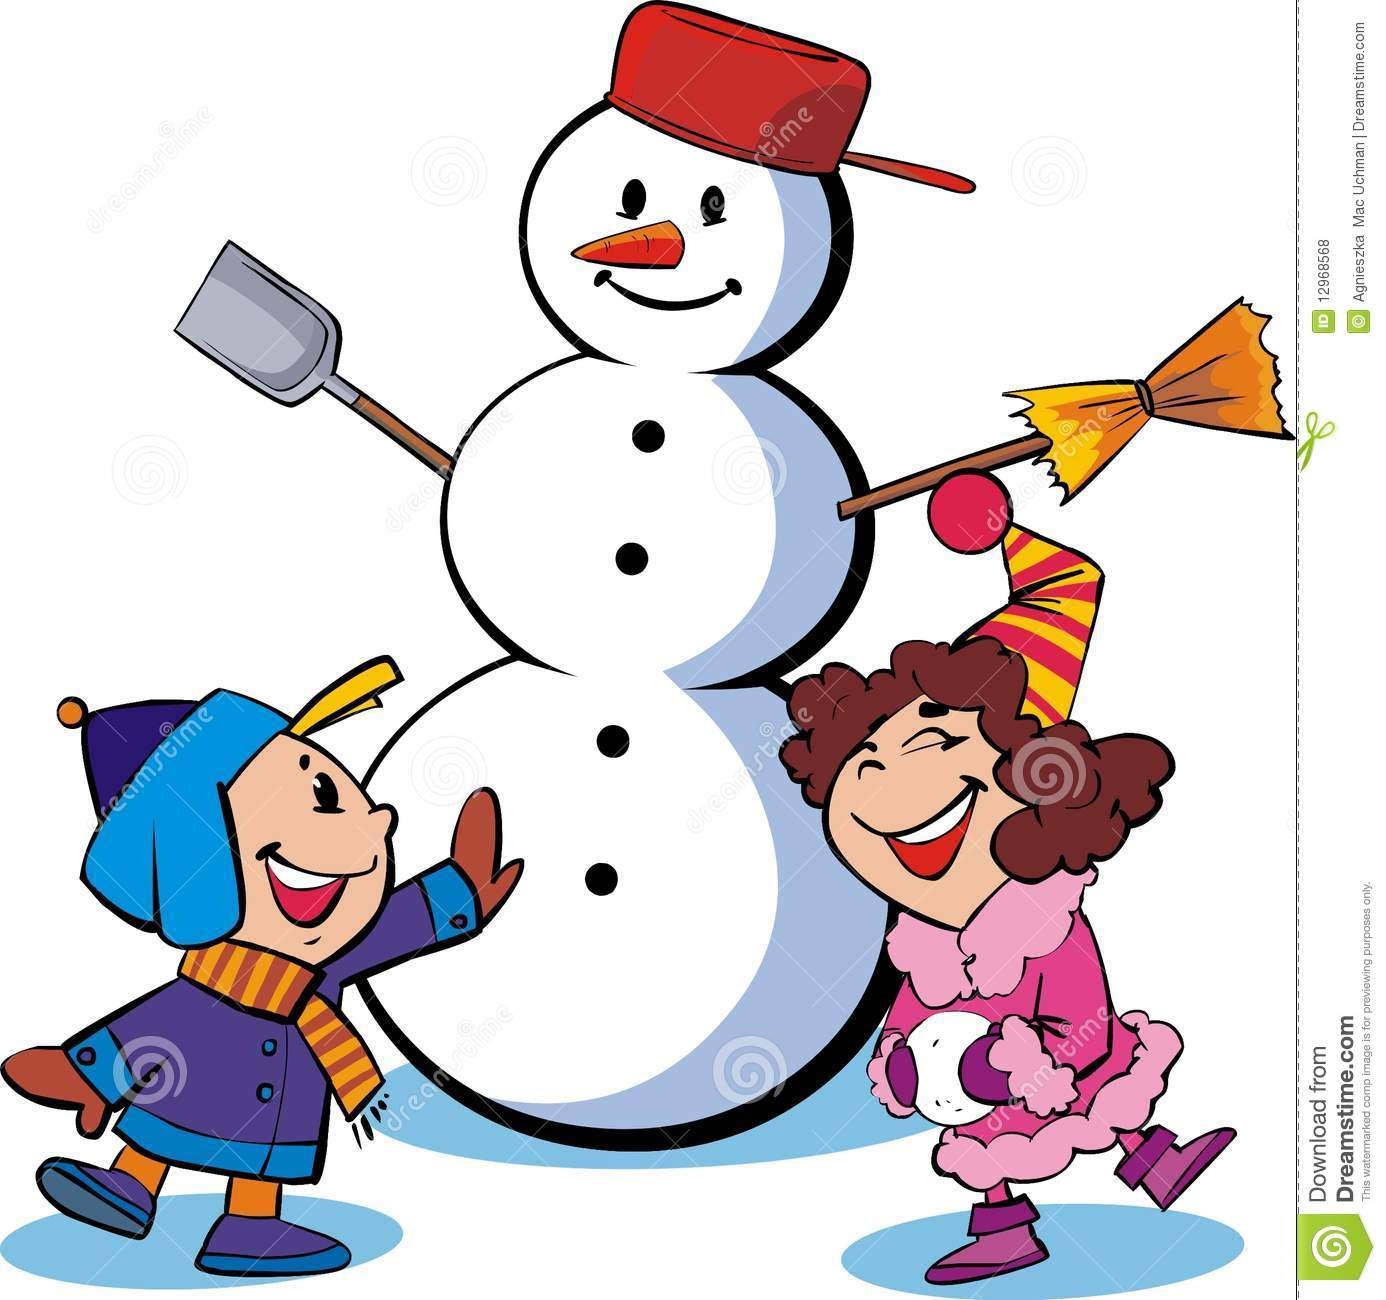 download its about Related Snowman And Childrensnow Fun pic